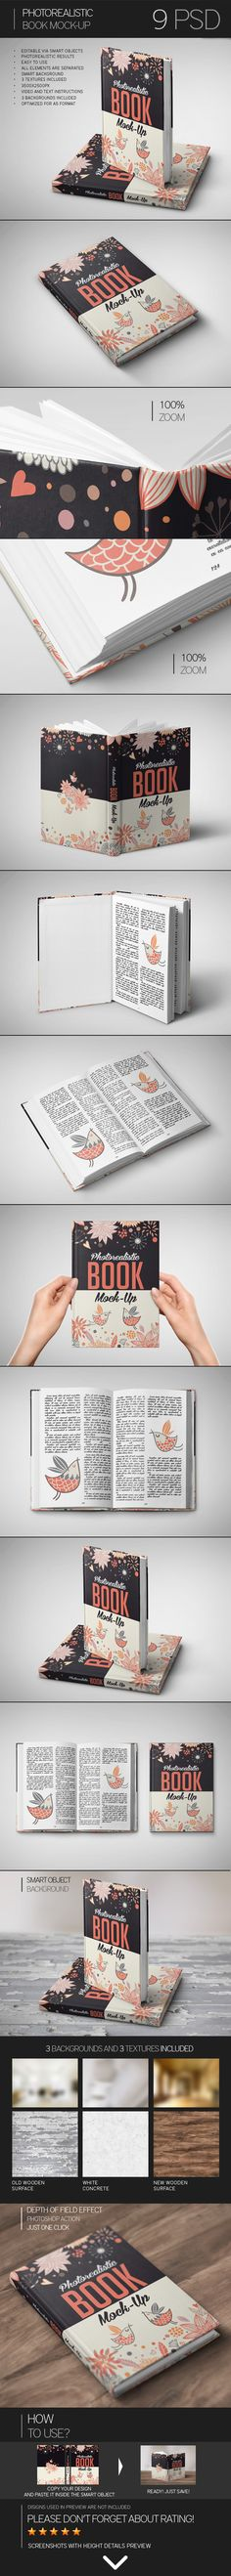 Photorealistic Book Mock-Up on Behance